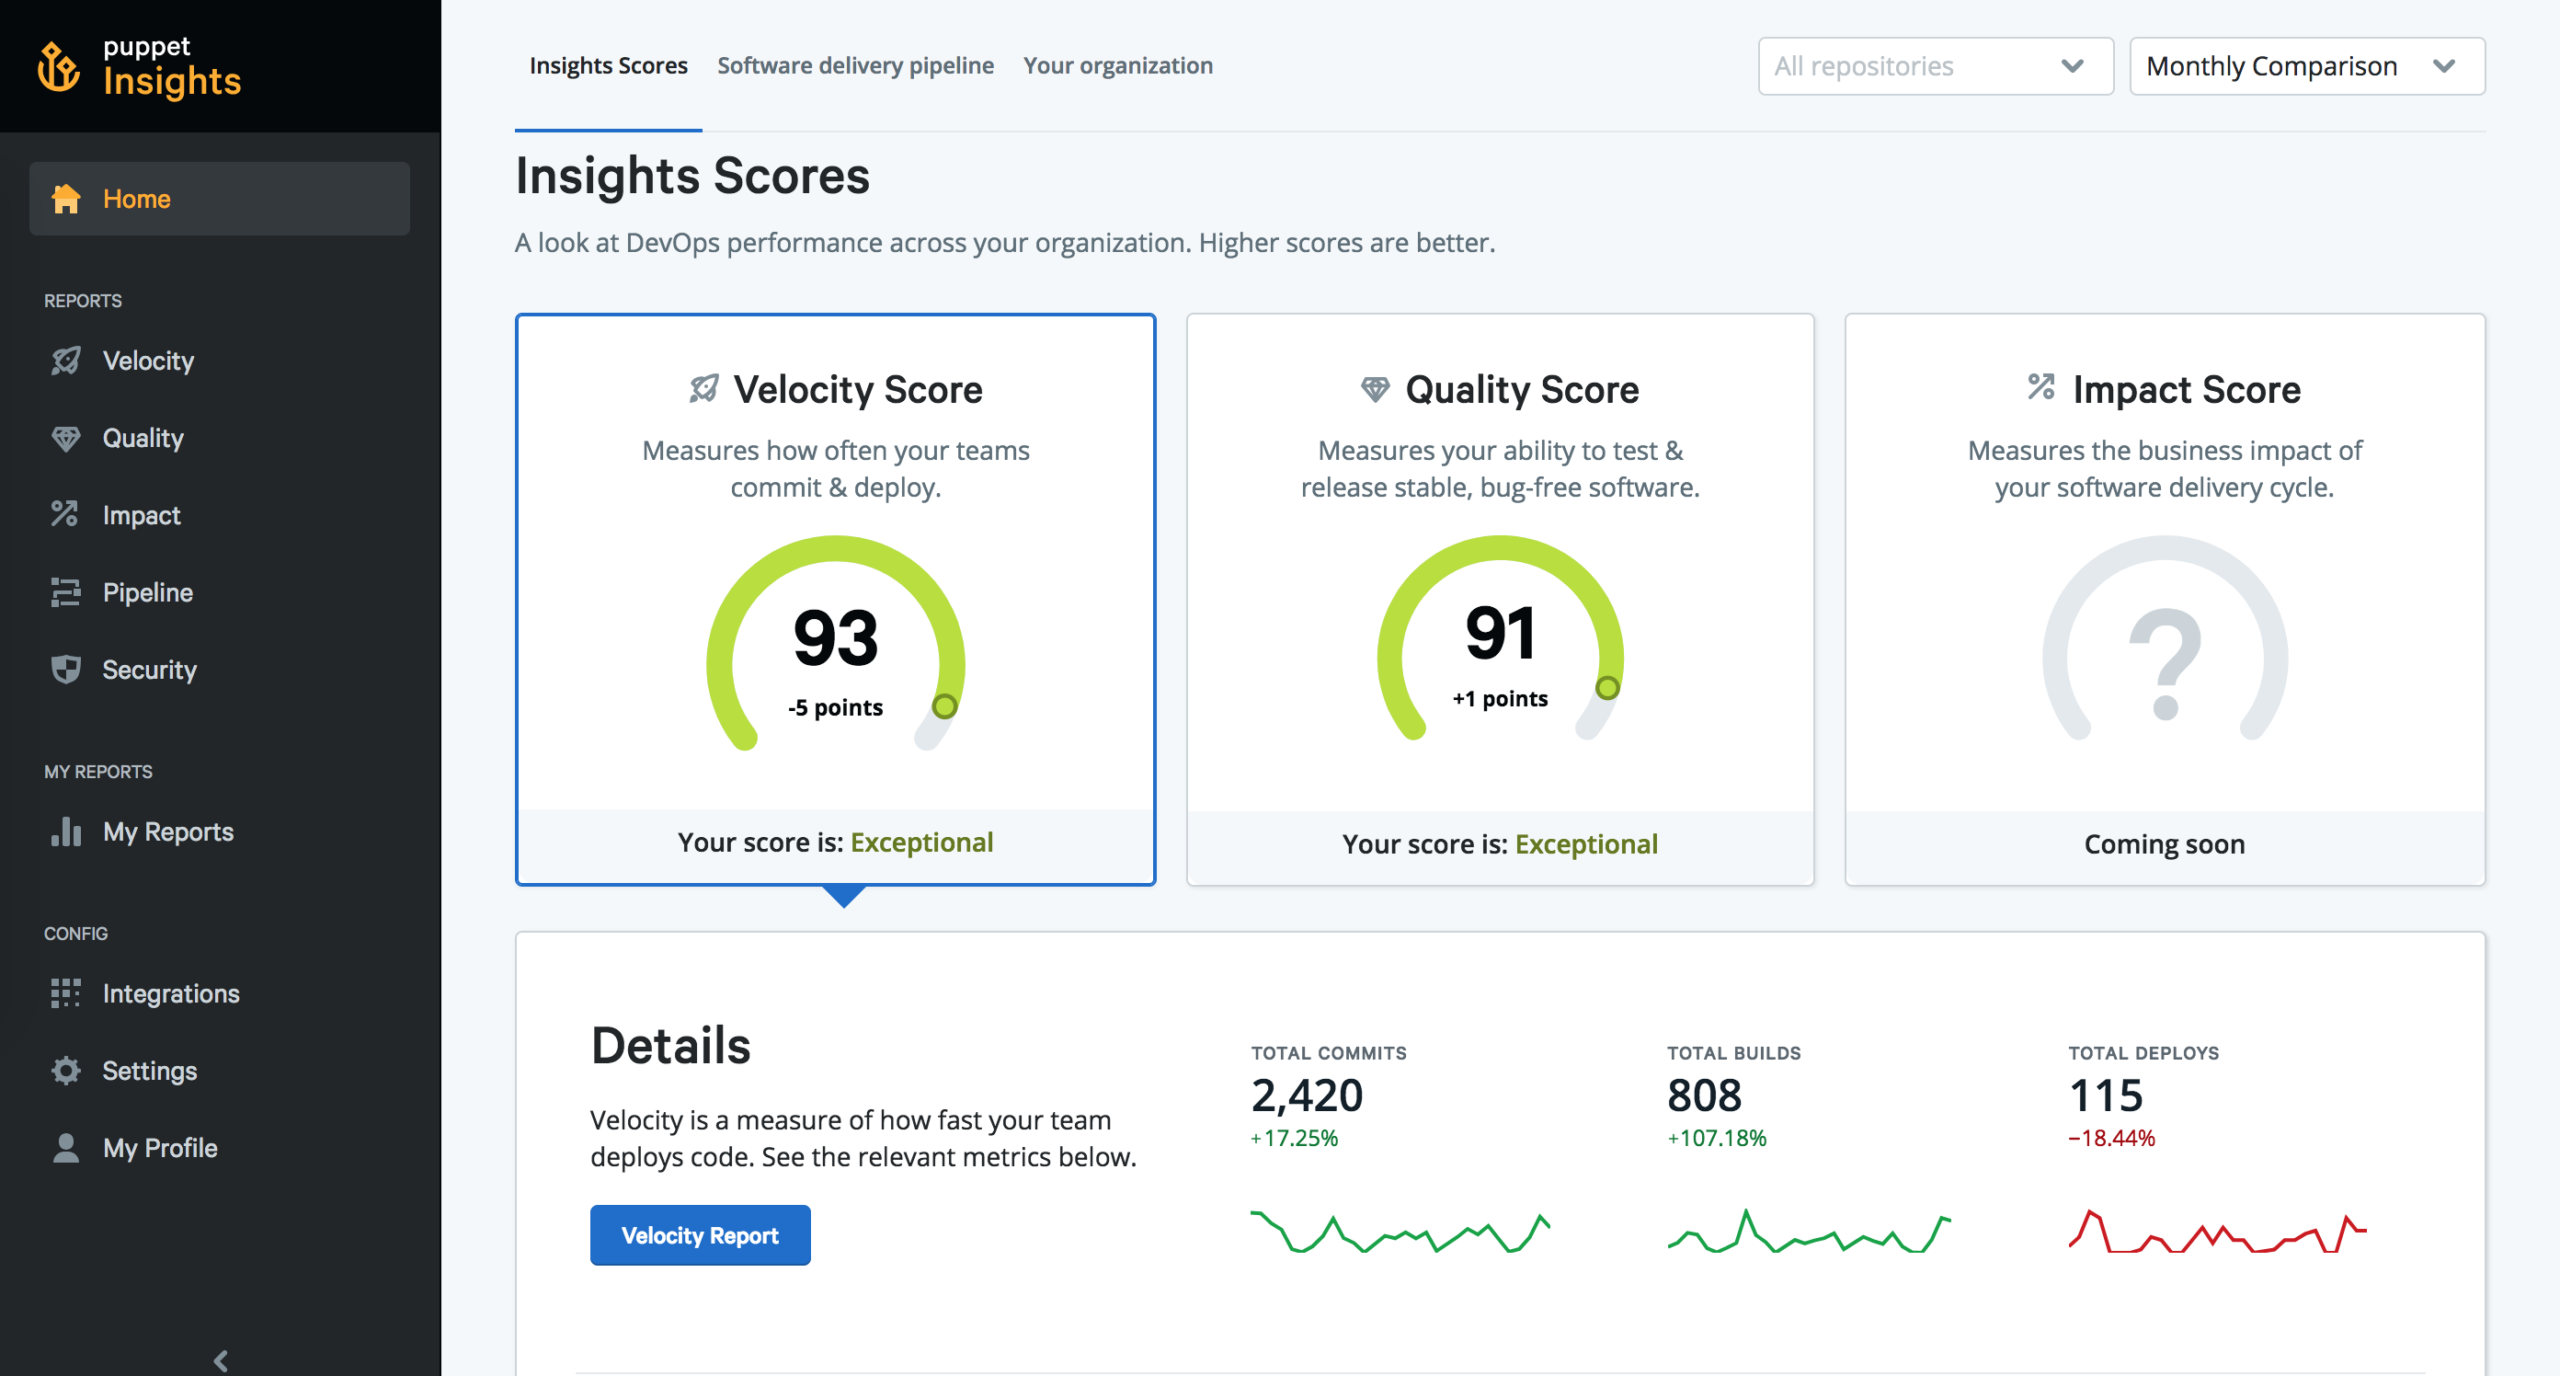 Puppet Insights Scores scaled